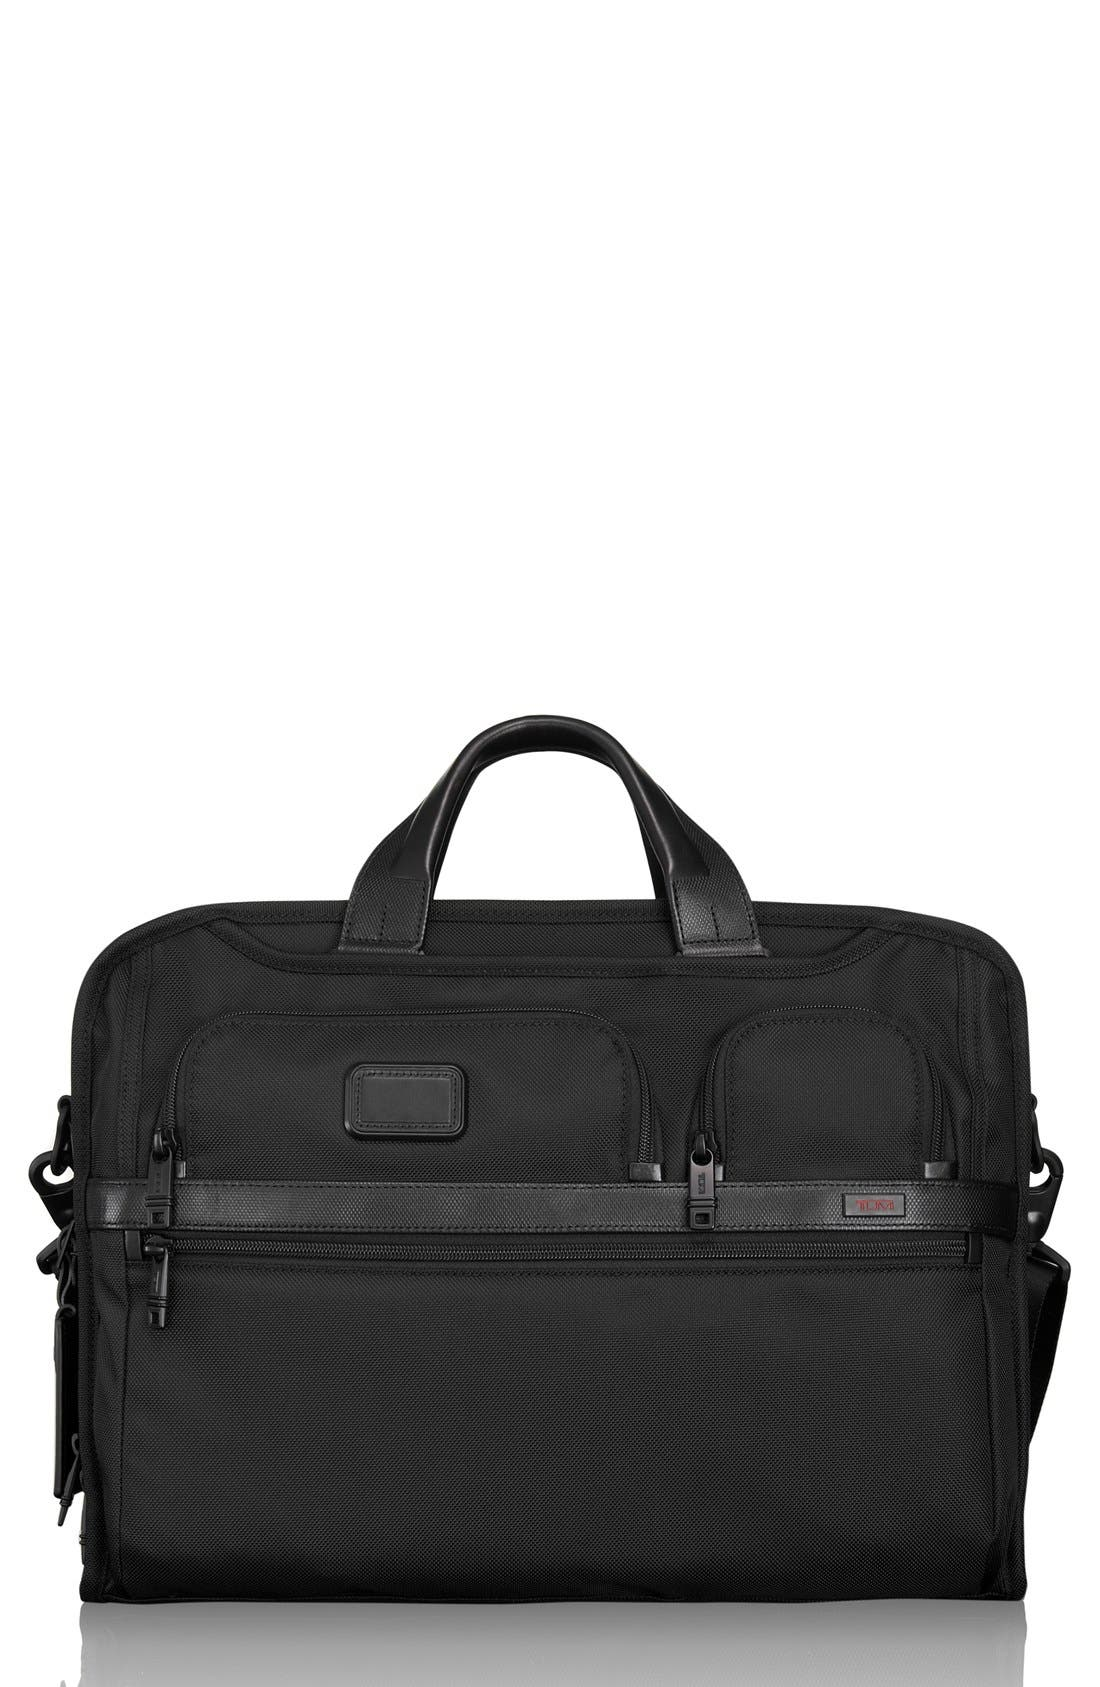 Alpha 2 Laptop Briefcase with Tumi ID Lock Pocket,                             Main thumbnail 1, color,                             BLACK